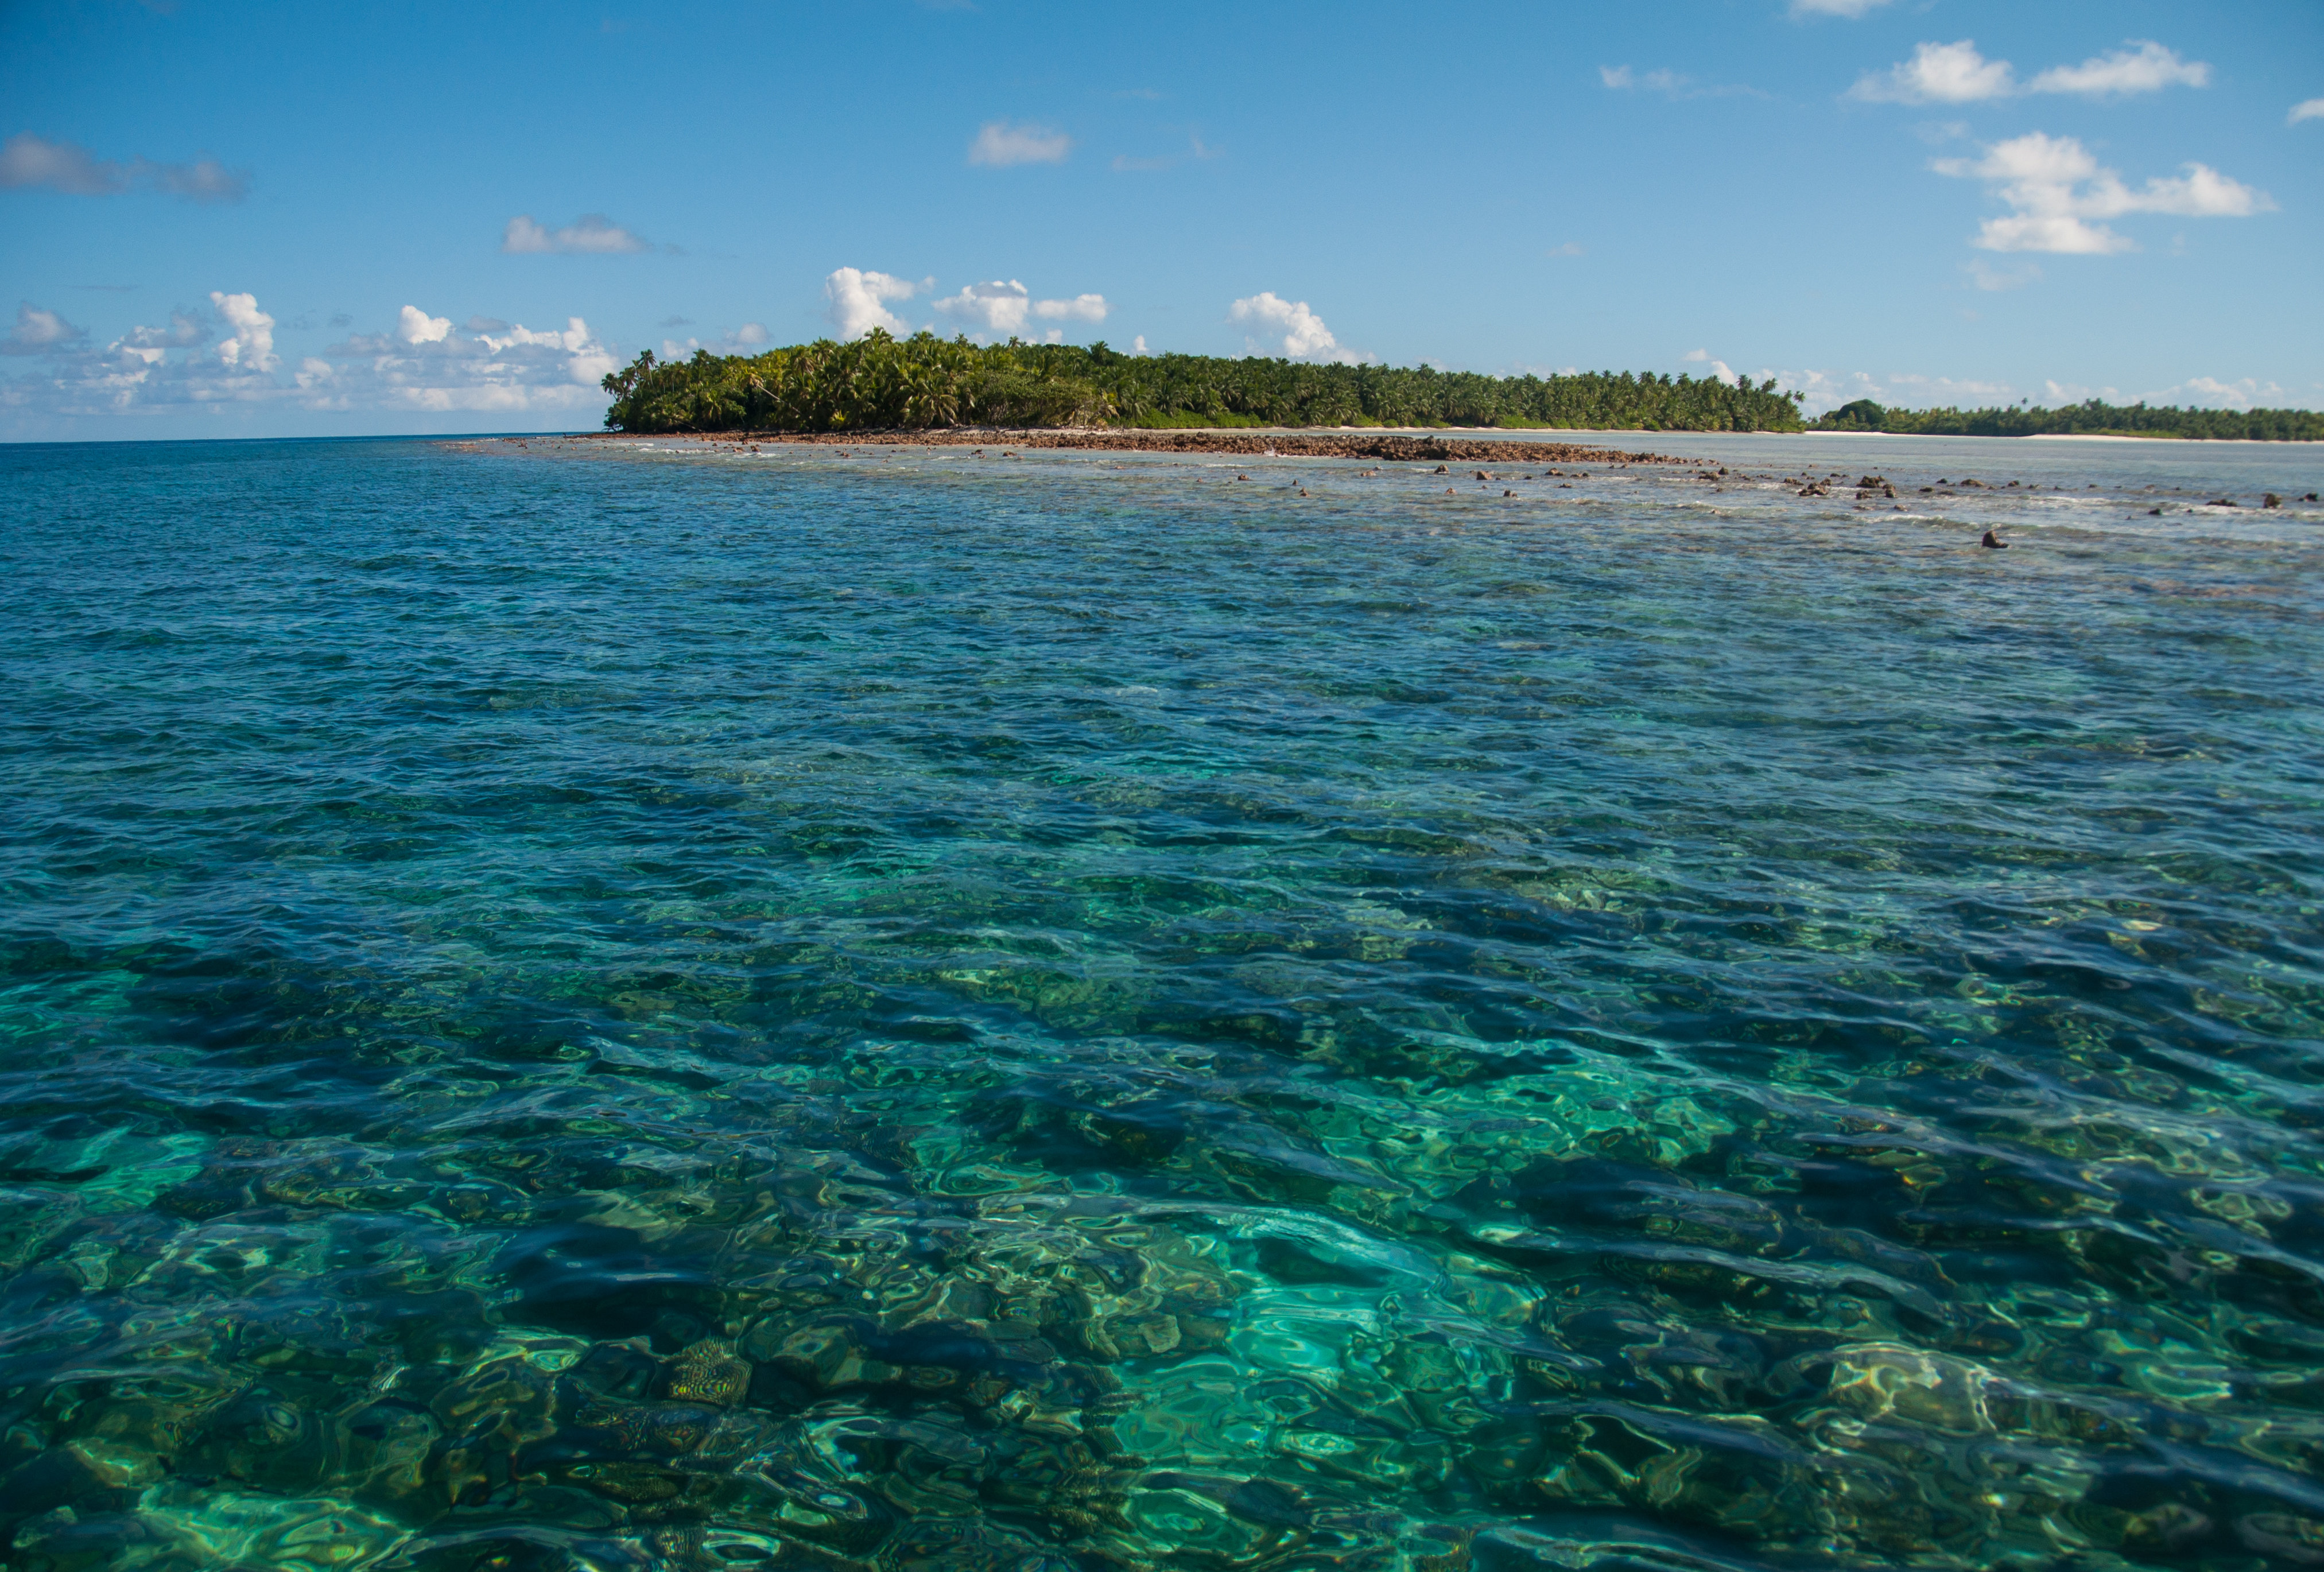 One third of the global ocean's no-take area is contained within the Chagos Marine Reserve.